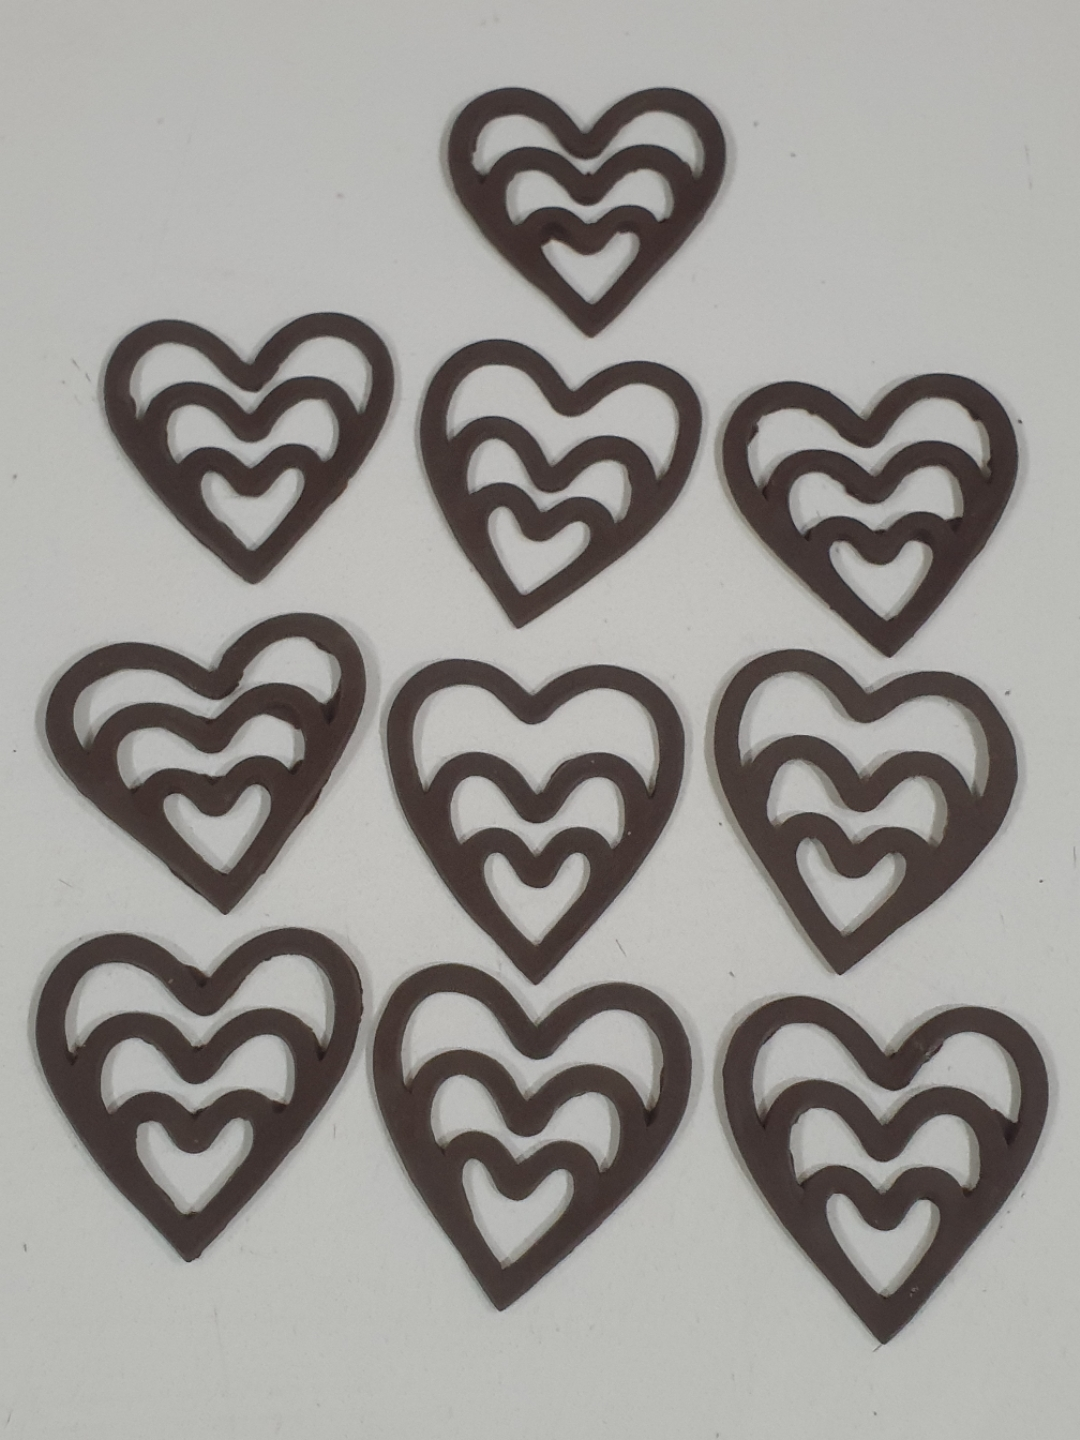 3 Layers Heart Chocolate Decorations